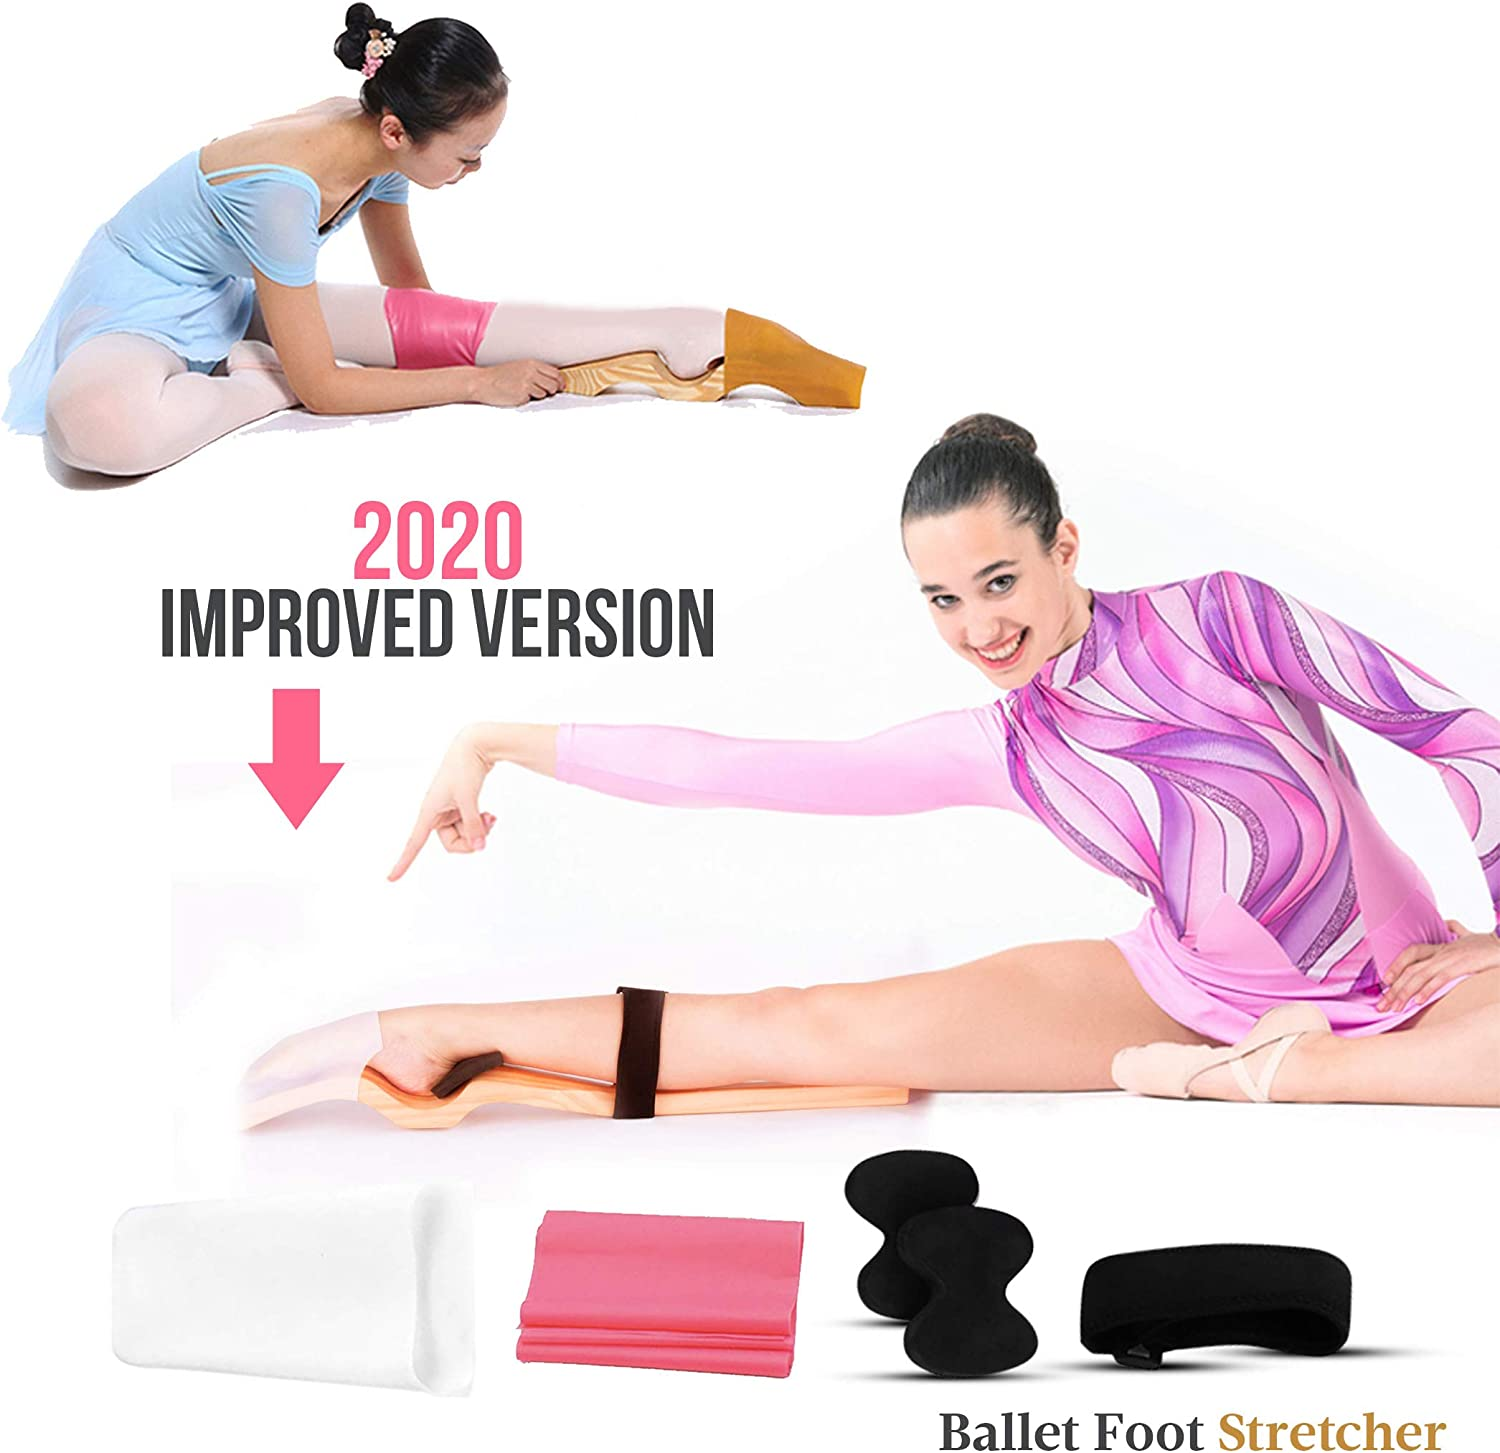 Ballet Foot Stretcher Set by Geenyous - 2020 New Improved Ballet Foot Stretcher for Dancers, Fine Pine Wood Foot Arch Enhancer, Elastic Stretch Band, Pad, and Leg Strap